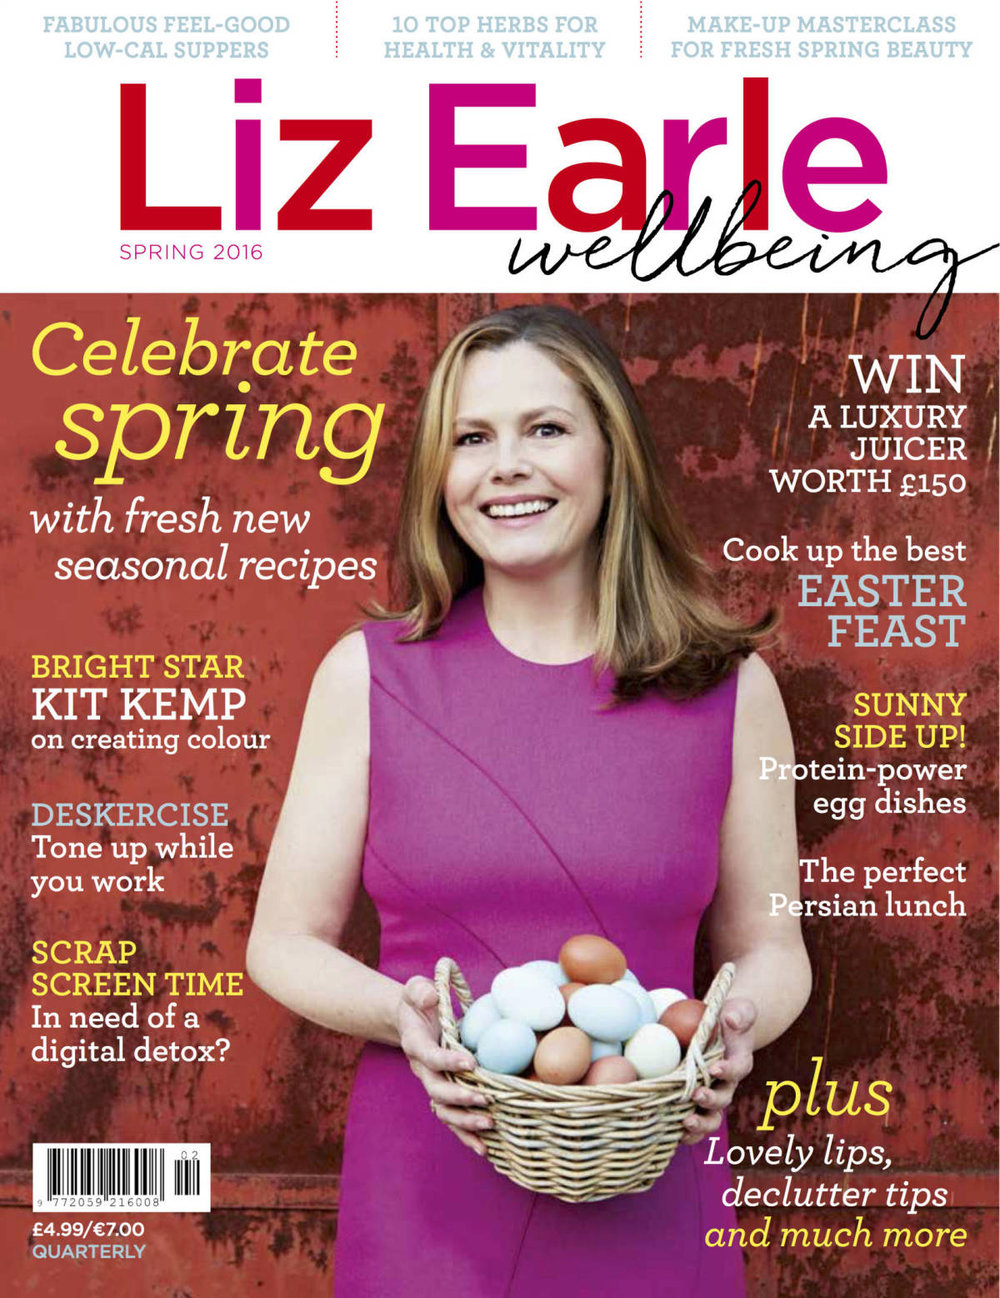 Liz-Earle-Wellbeing-magazine-Spring-2016-edition-1200x1557.jpg